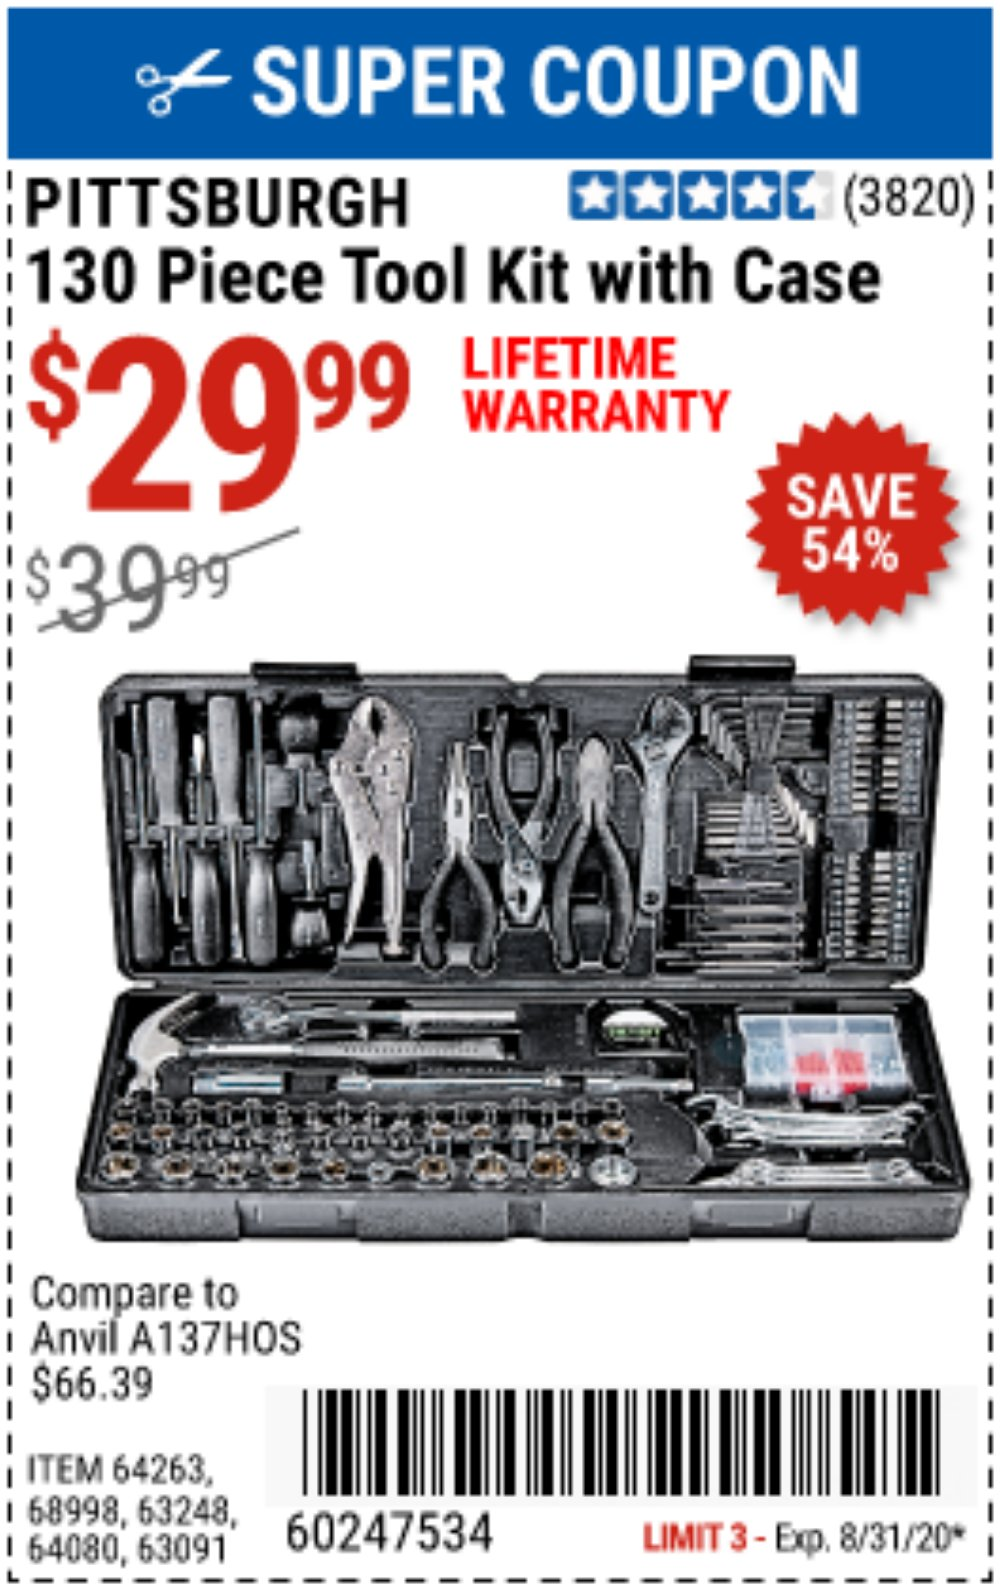 Harbor Freight Coupon, HF Coupons - 130 Piece Tool Kit With Case